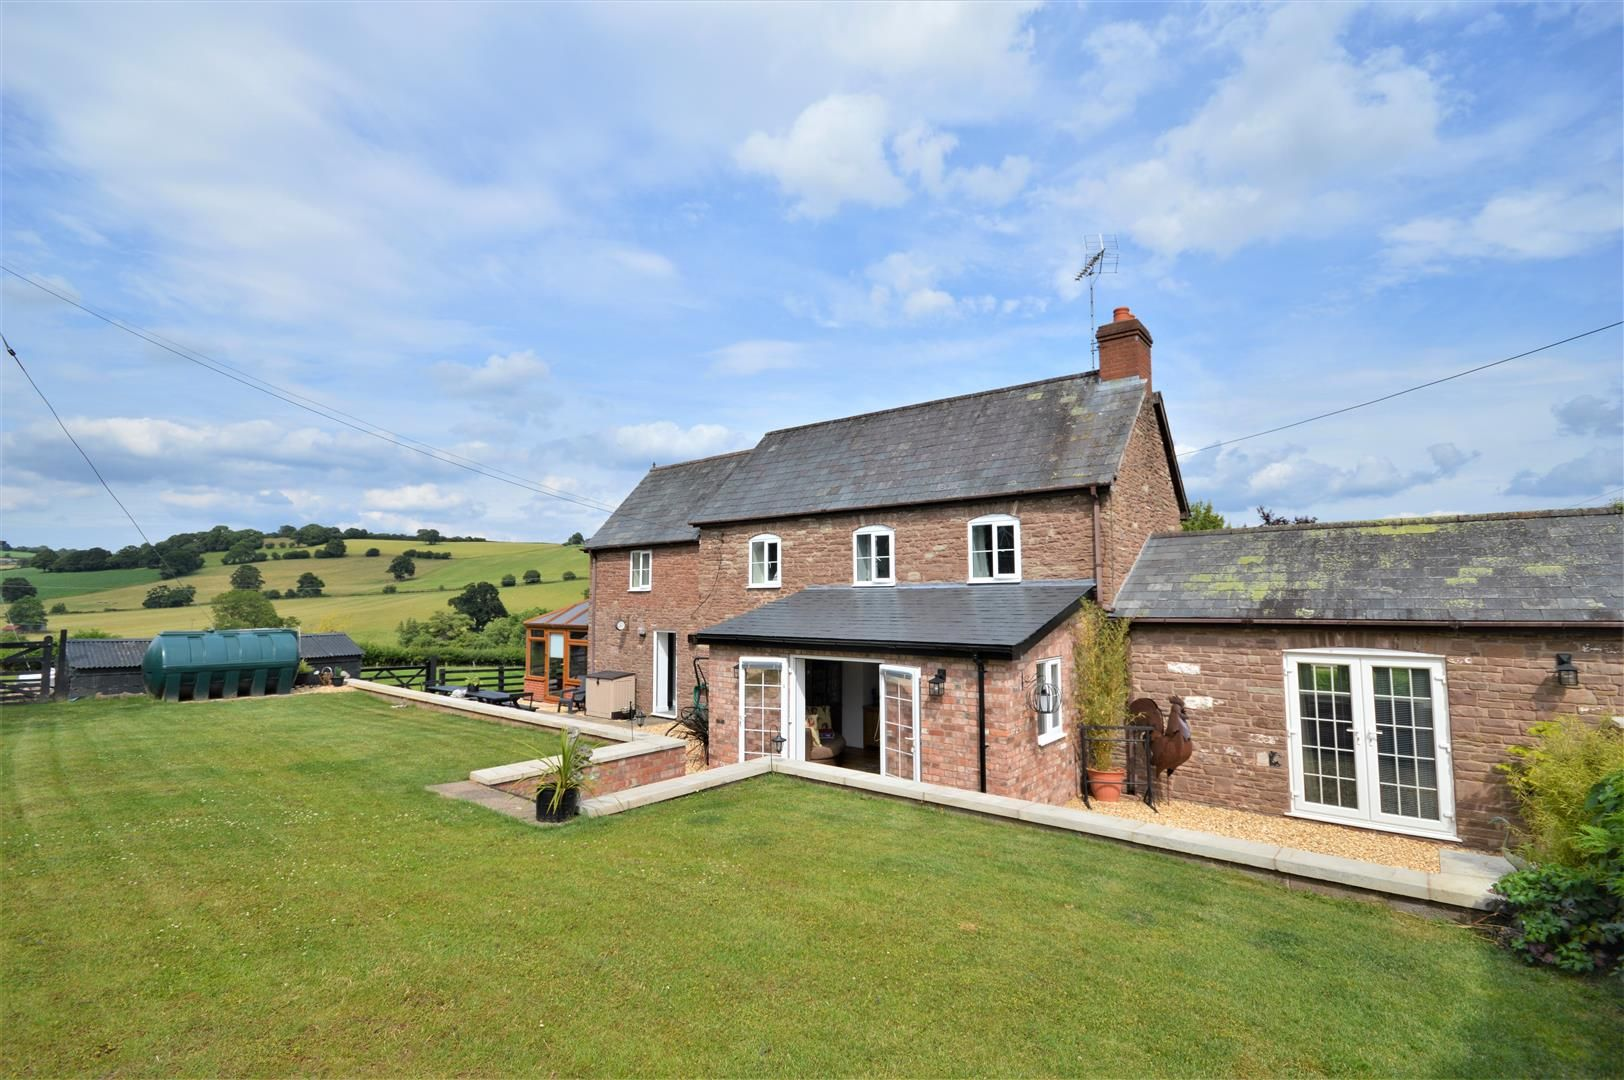 3 bed detached for sale in Orcop 3